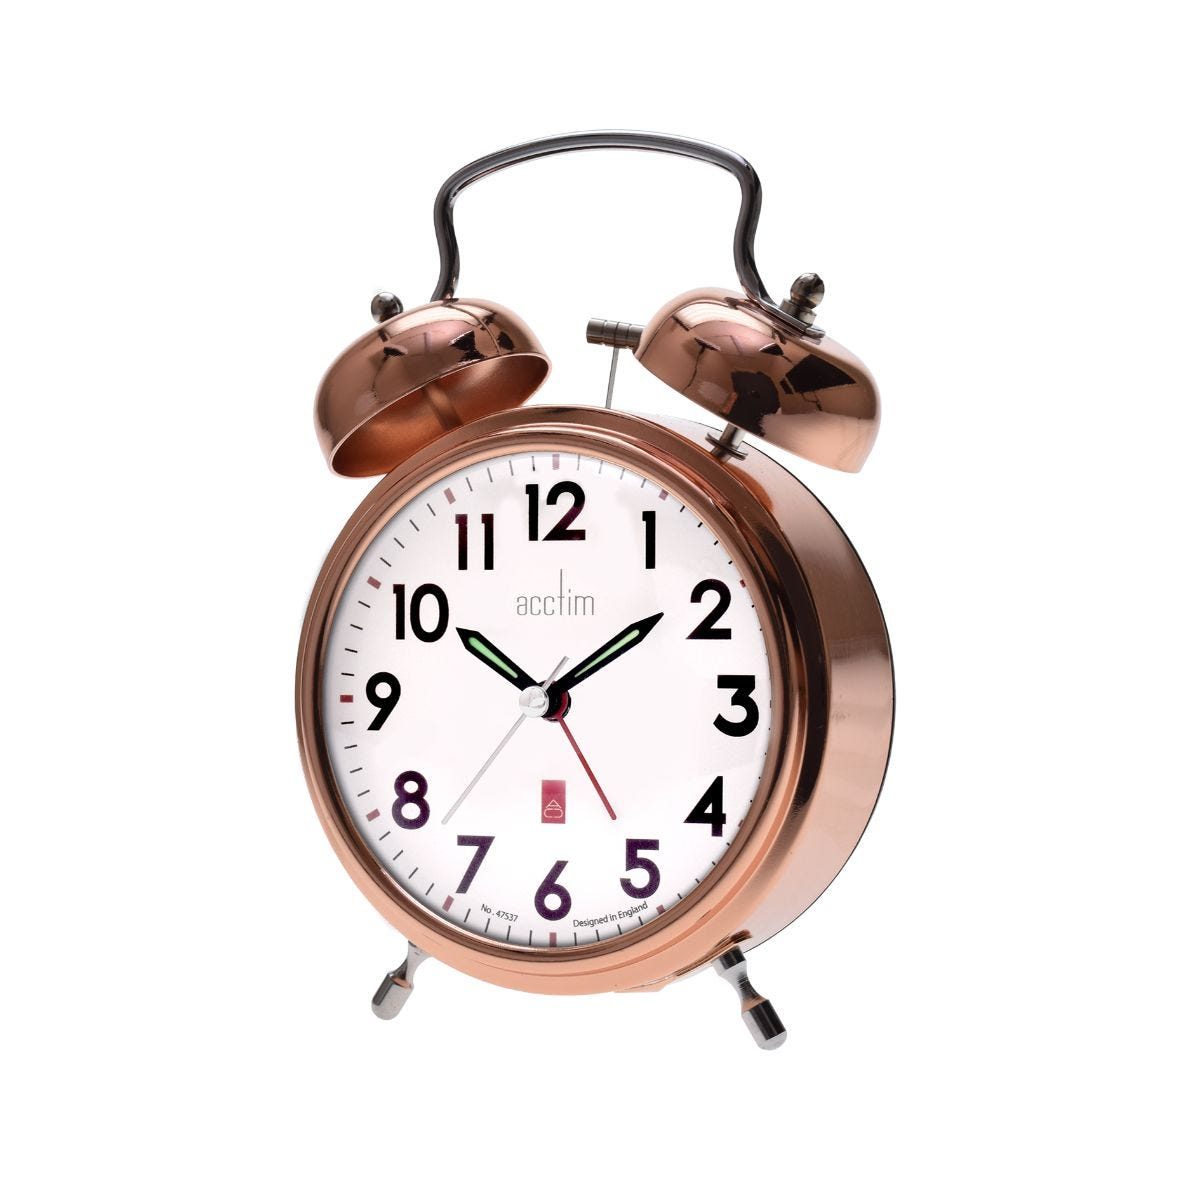 Image of Acctim Rover Bell Alarm Clock, Copper